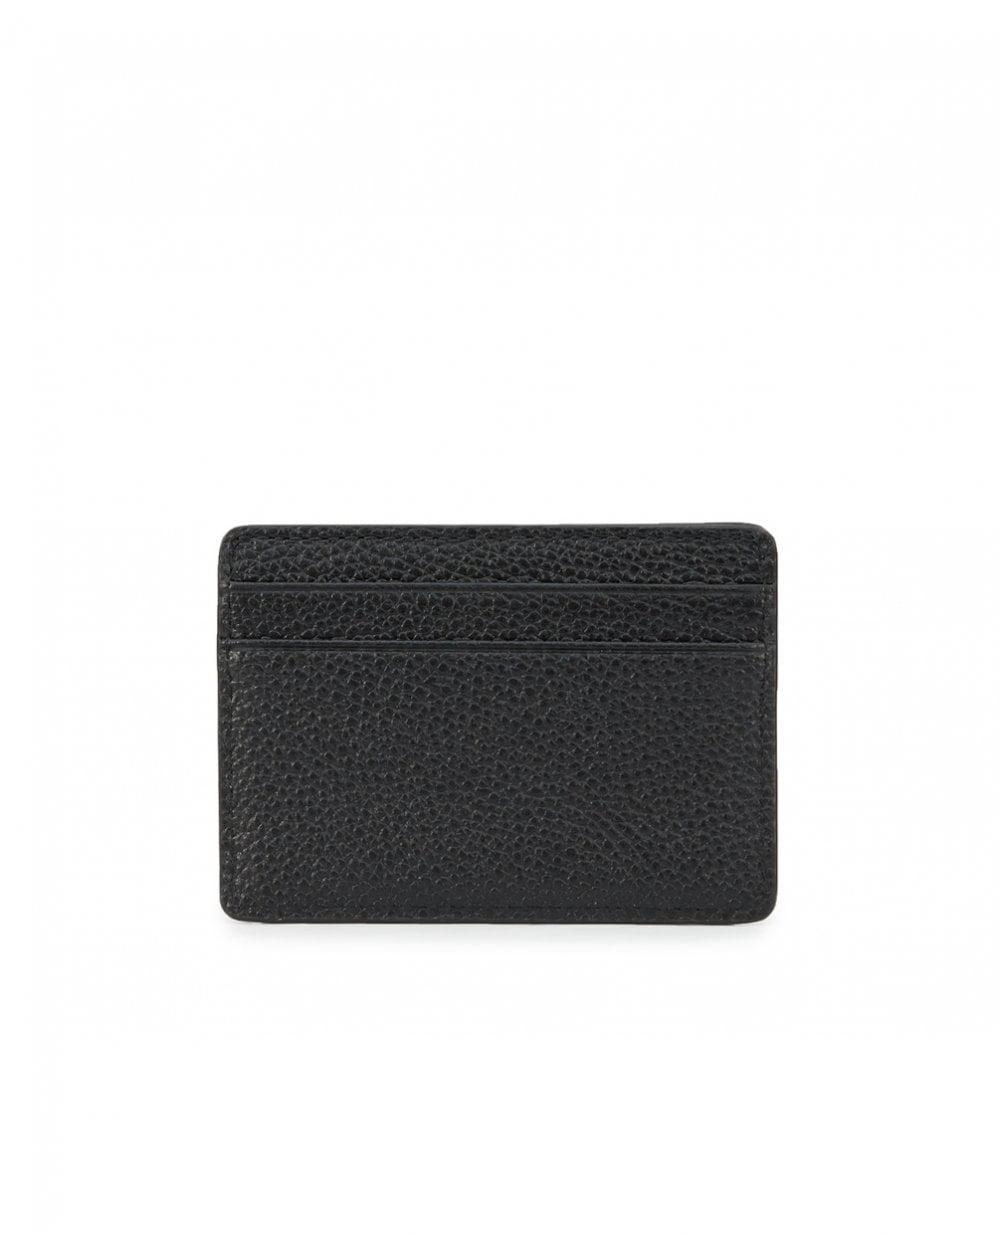 655e15a4614c7 Michael Kors Mercer Card Holder in Black - Lyst